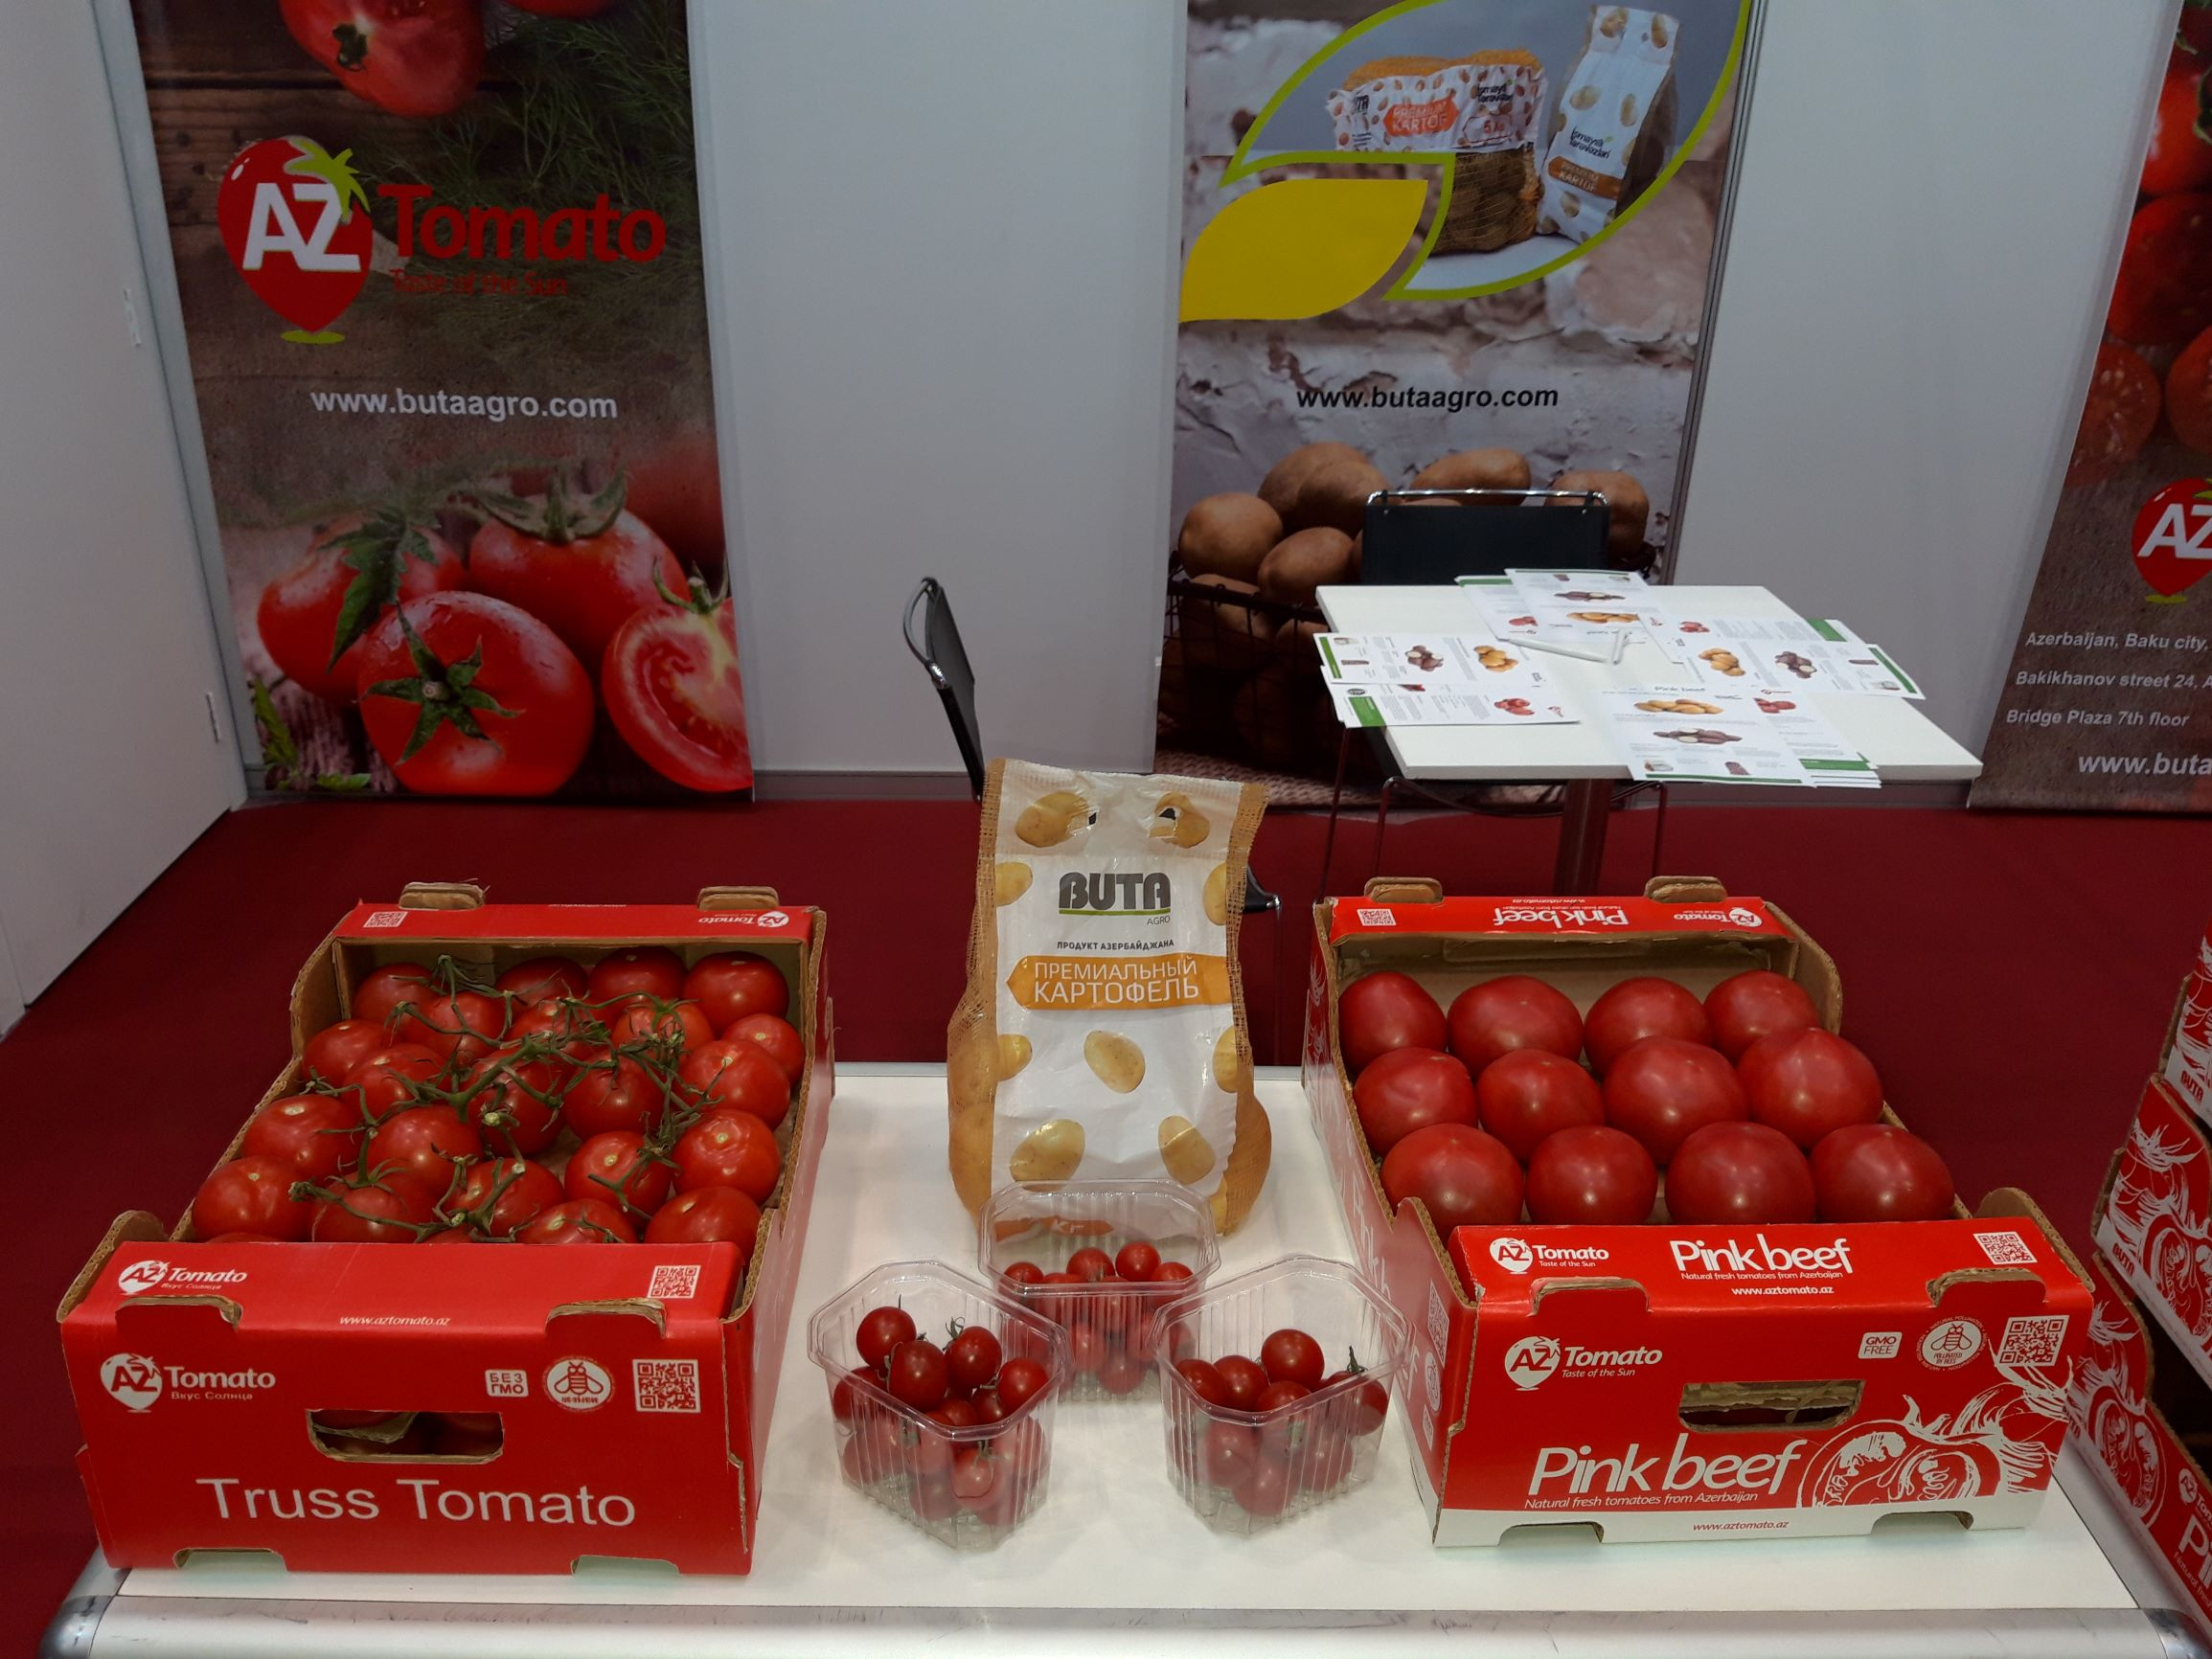 BUTA AGRO | Our company was represented at the First